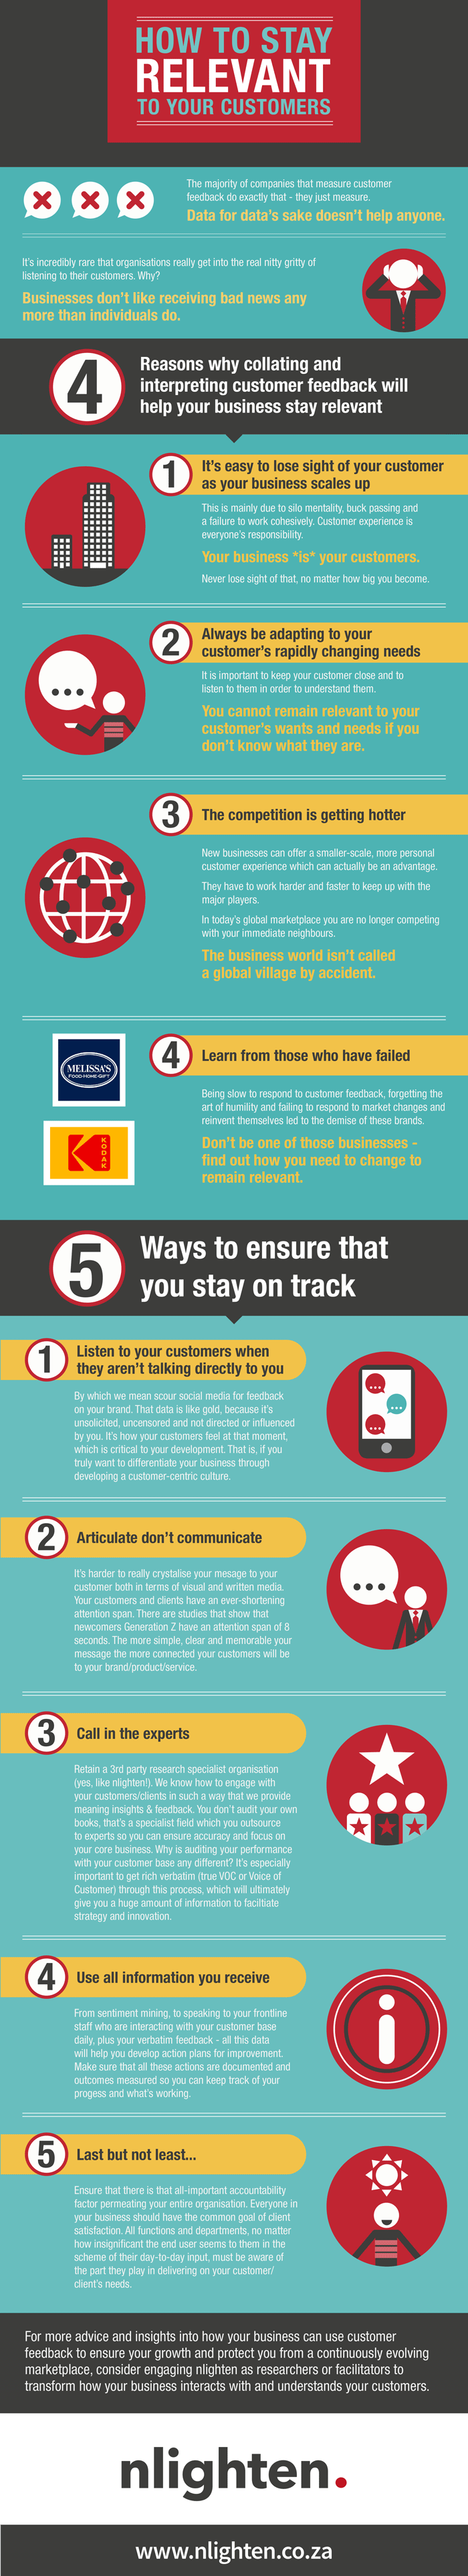 How to stay relevant to your customers